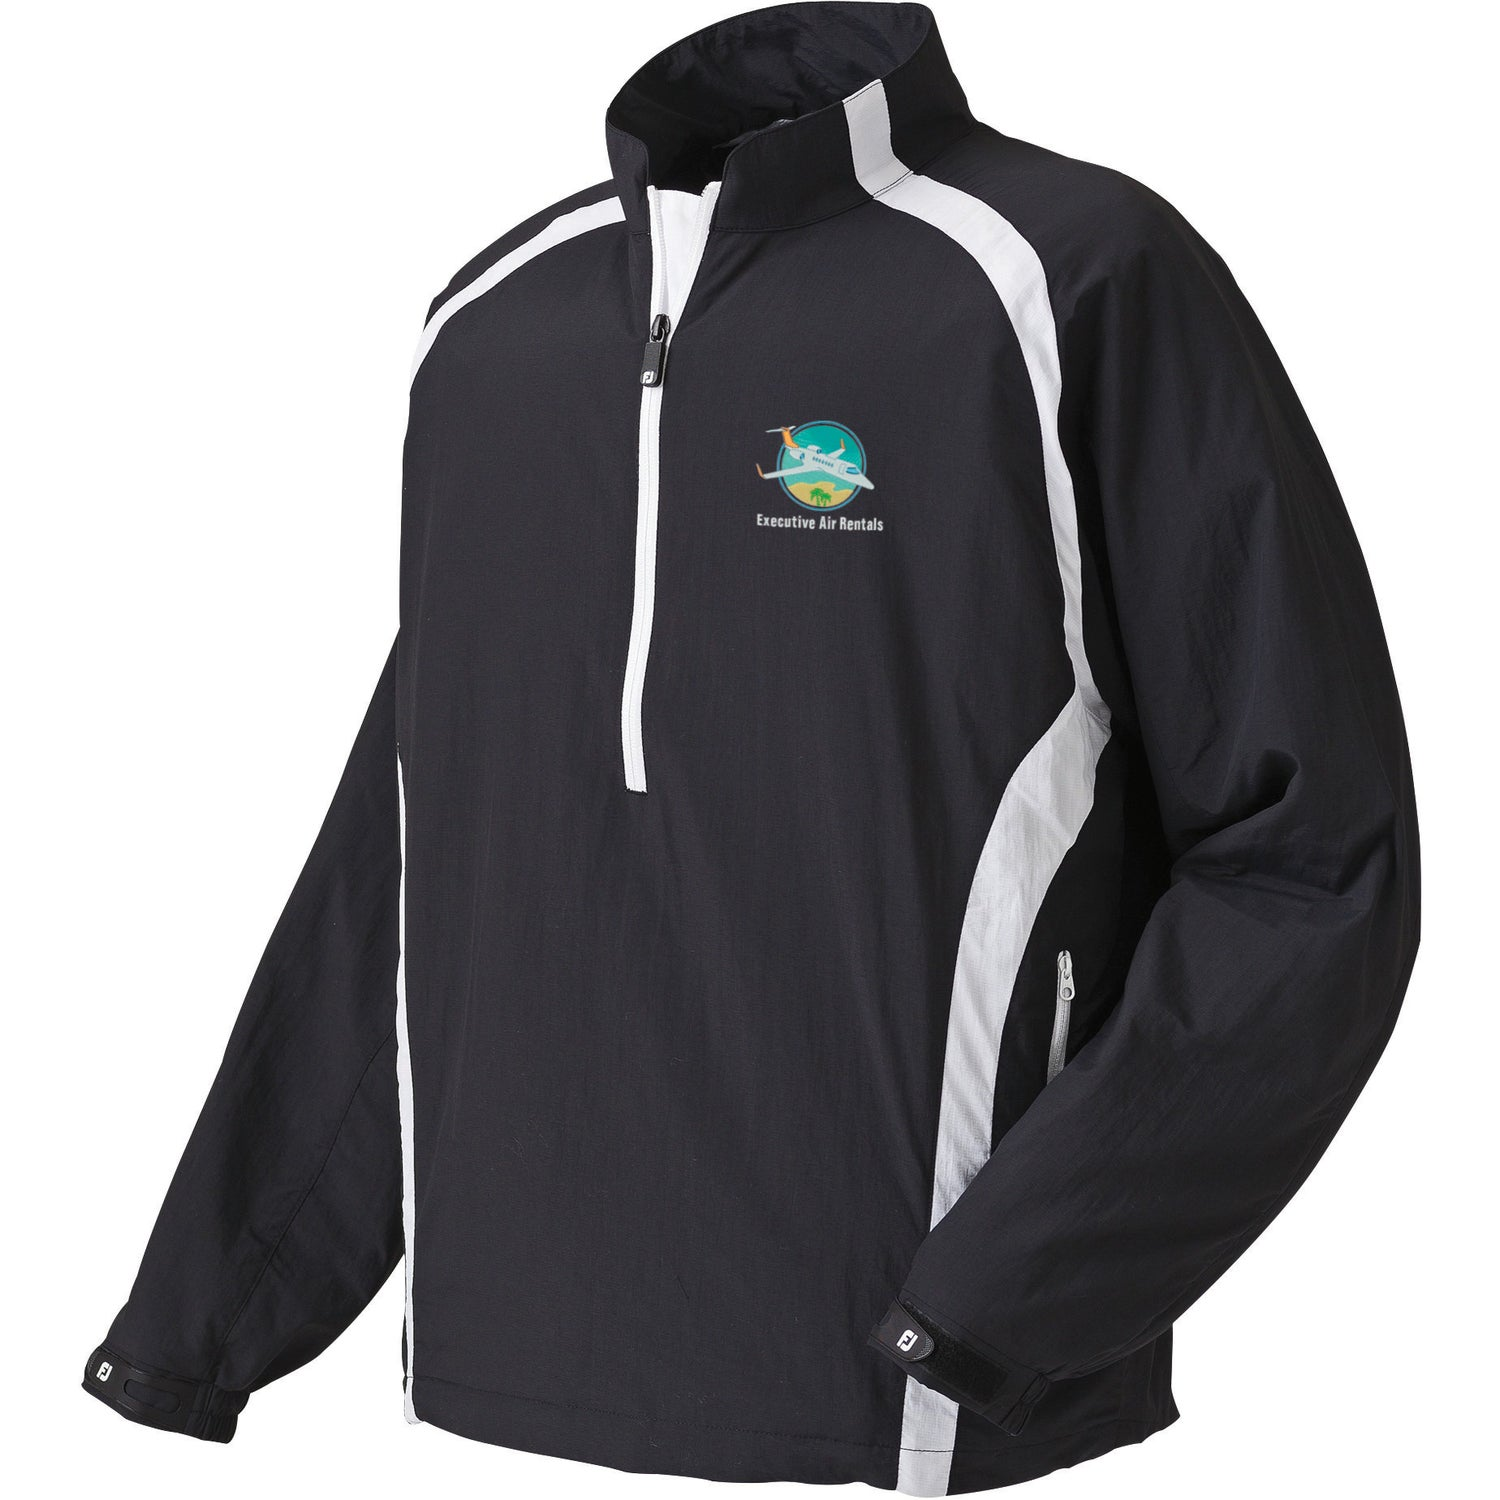 Titleist footjoy sport windshirt custom jackets and for Footjoy shirts with titleist logo